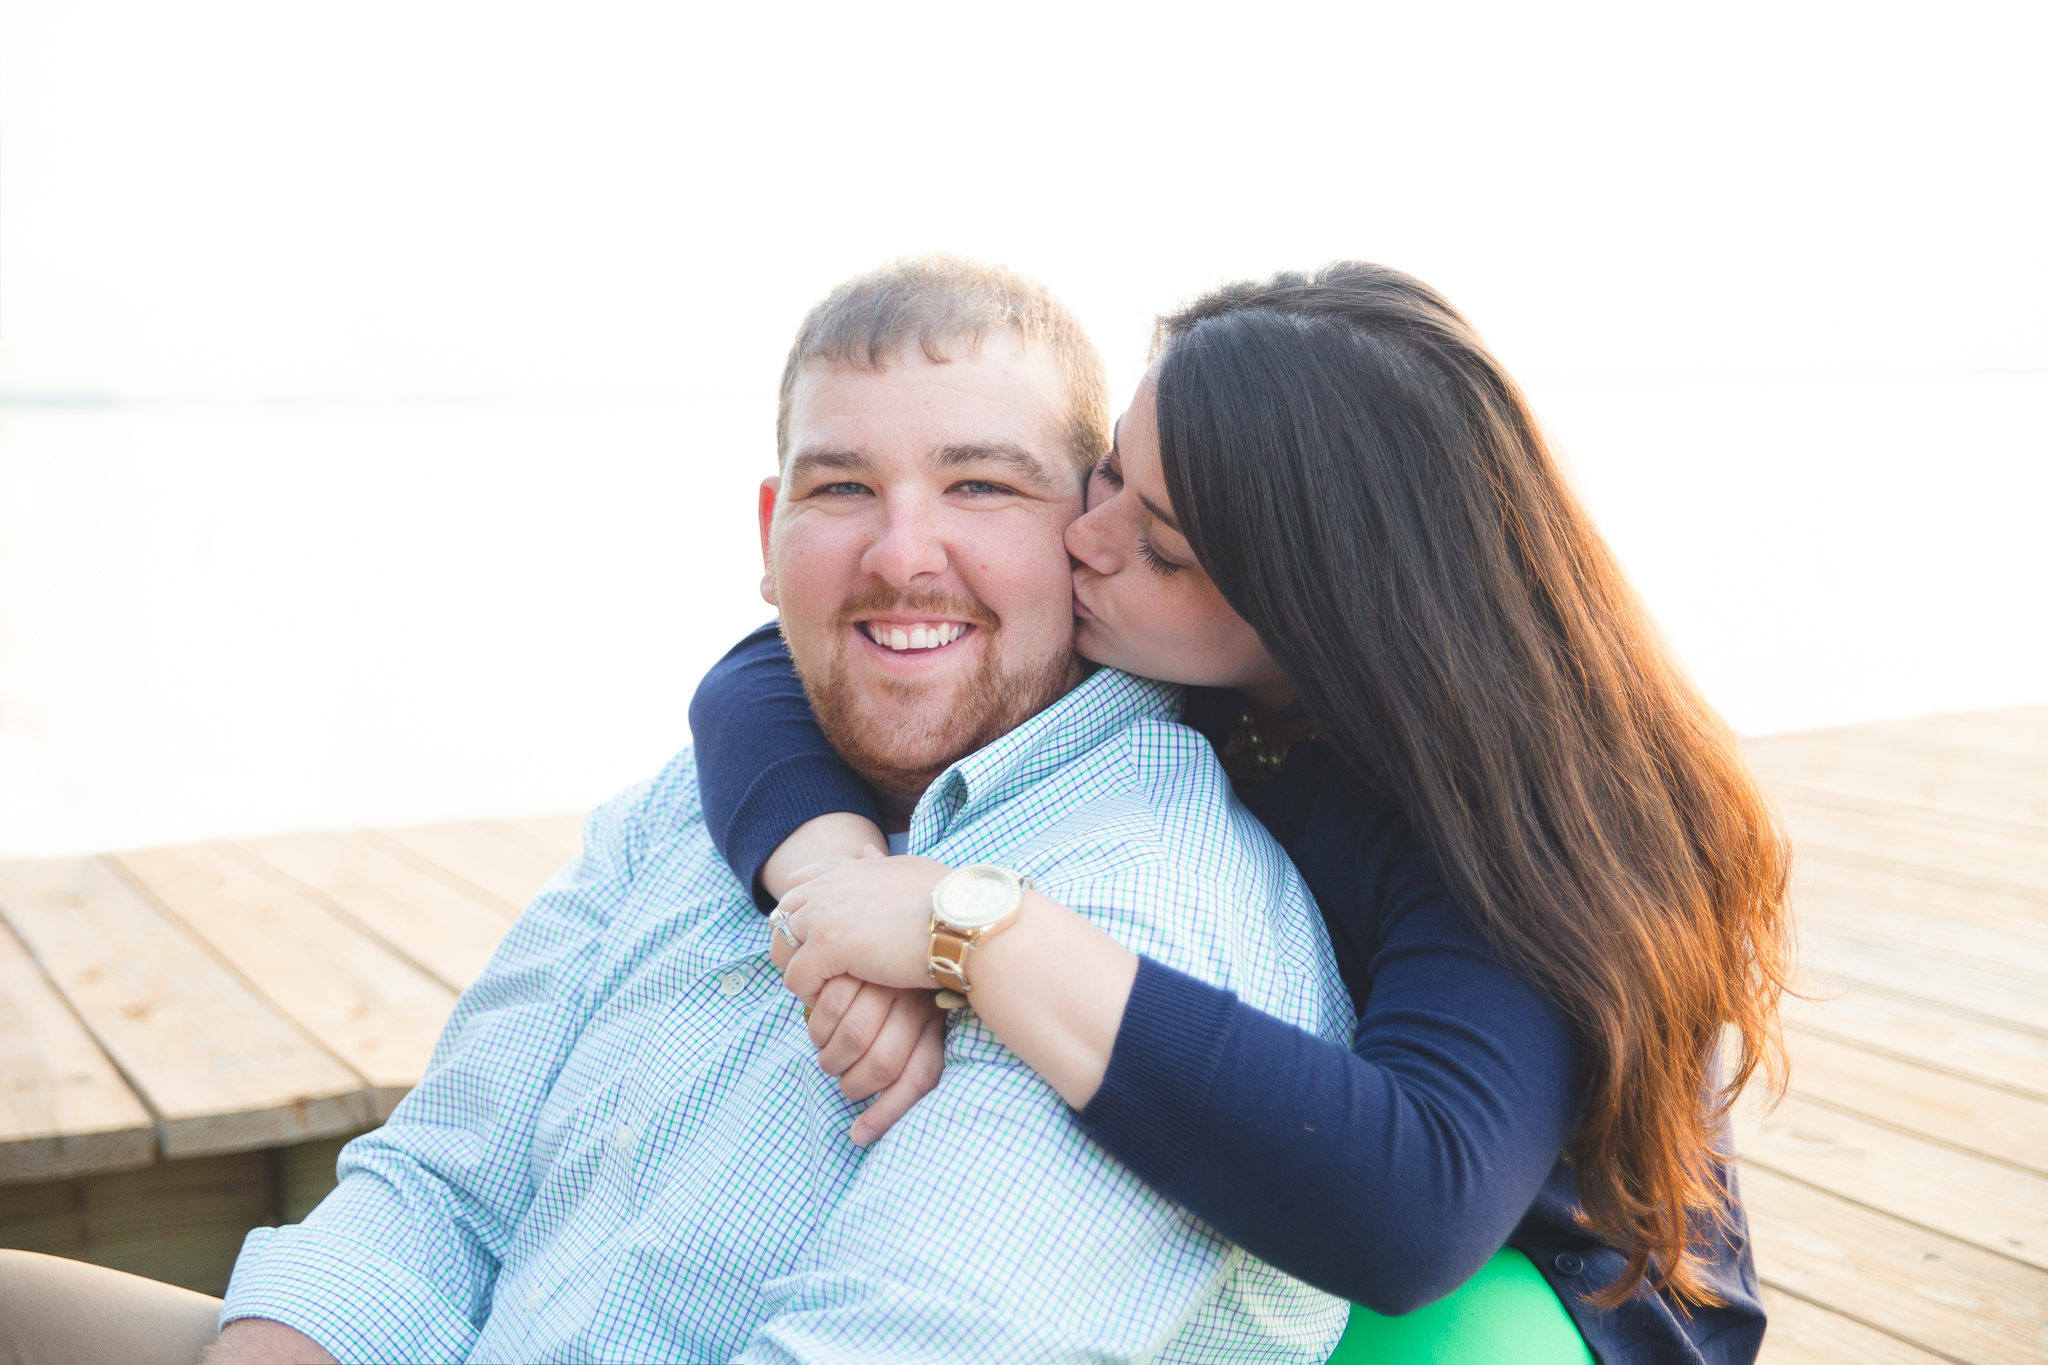 bethanygracephoto_website_engagement-14.JPG